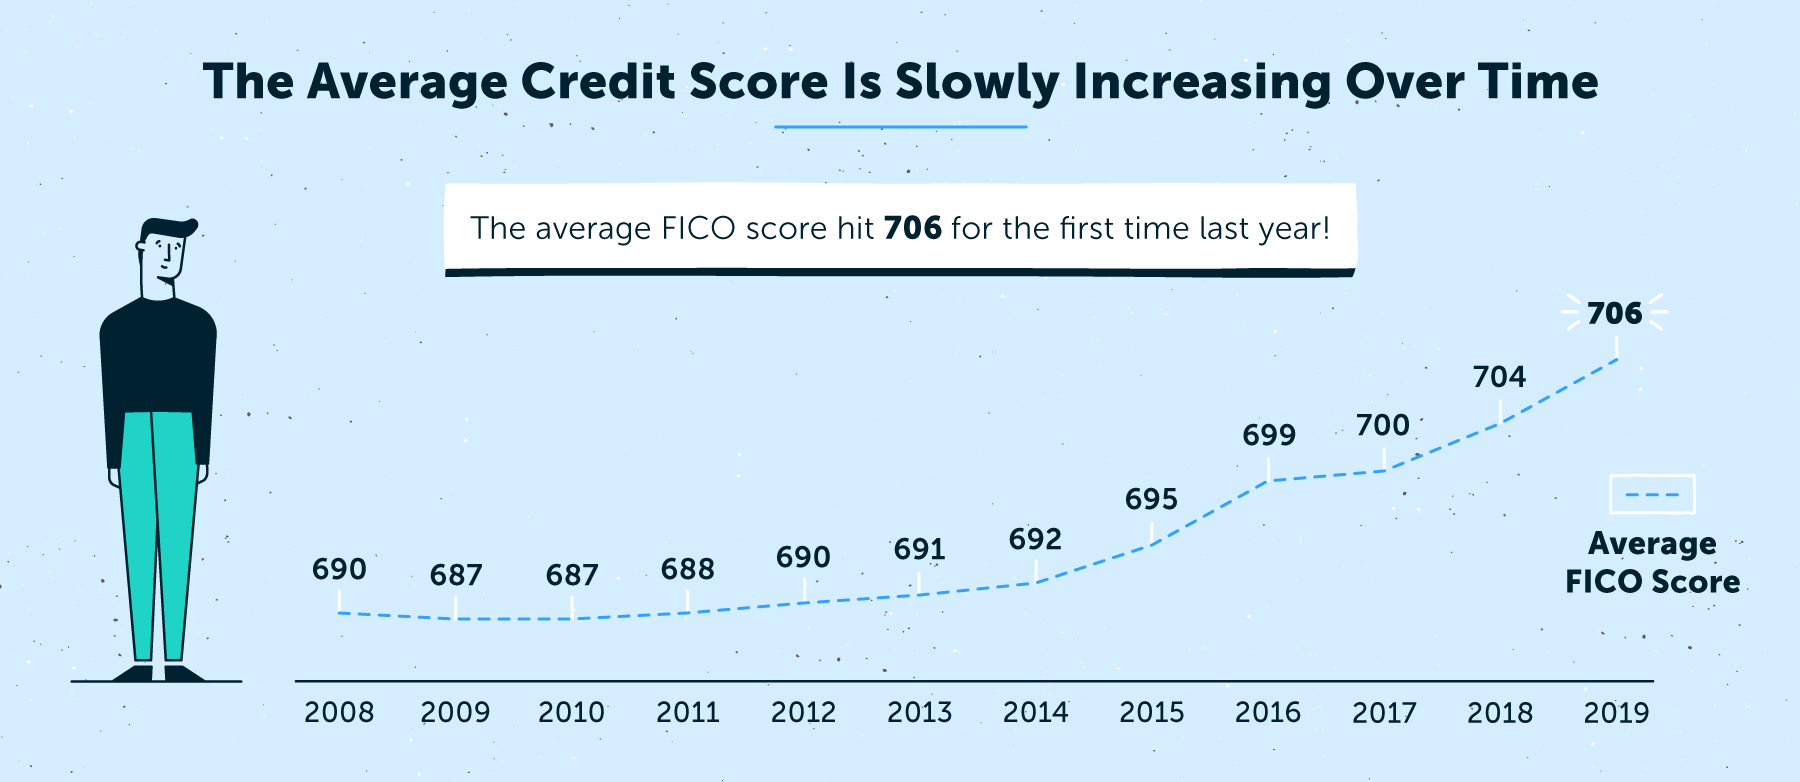 the average credit score is increasing over time